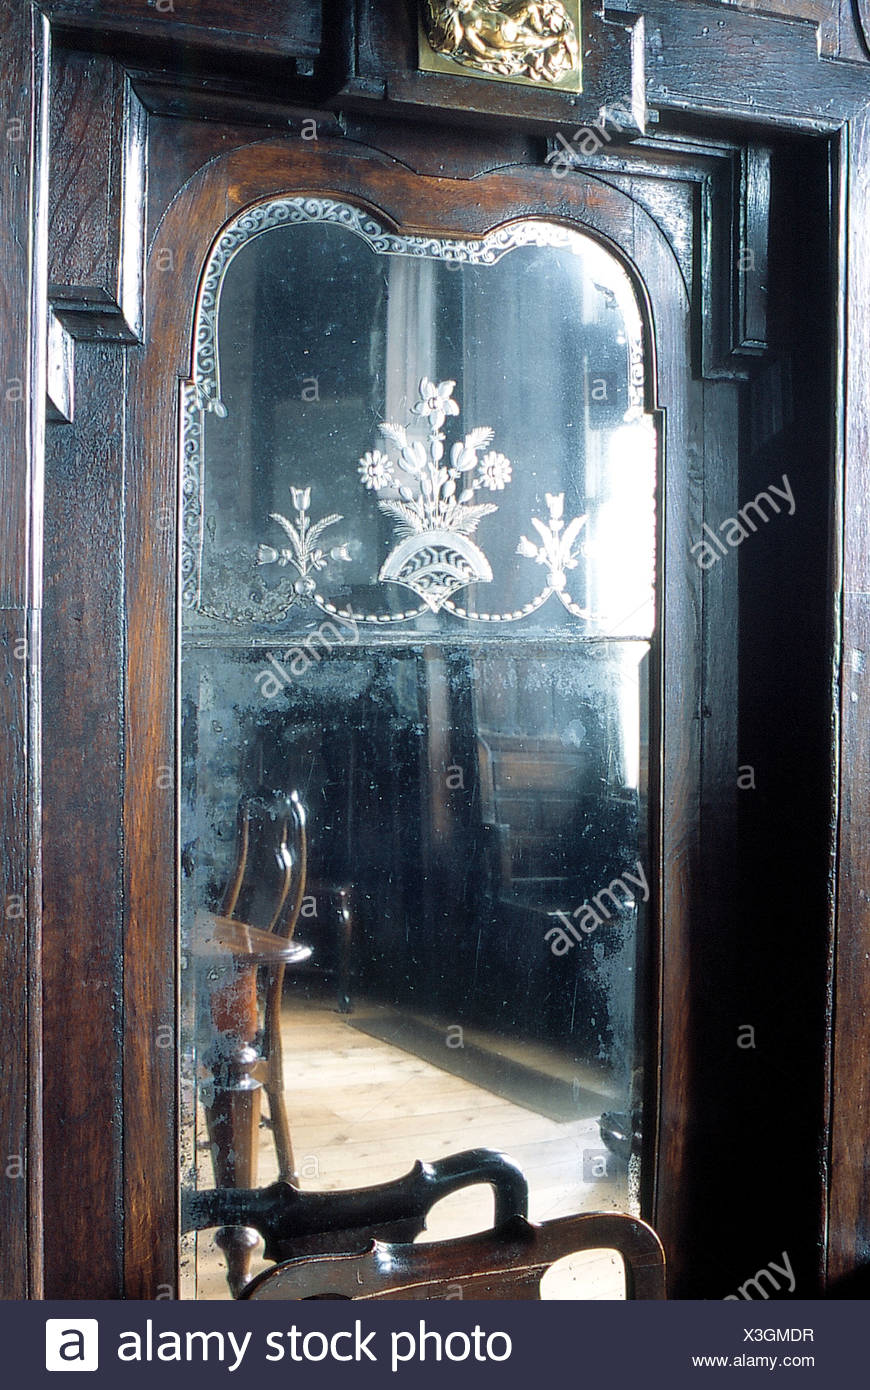 Reflection Of Country Dining Room In Antique Cupboard With Etched Glass Mirror Stock Photo Alamy